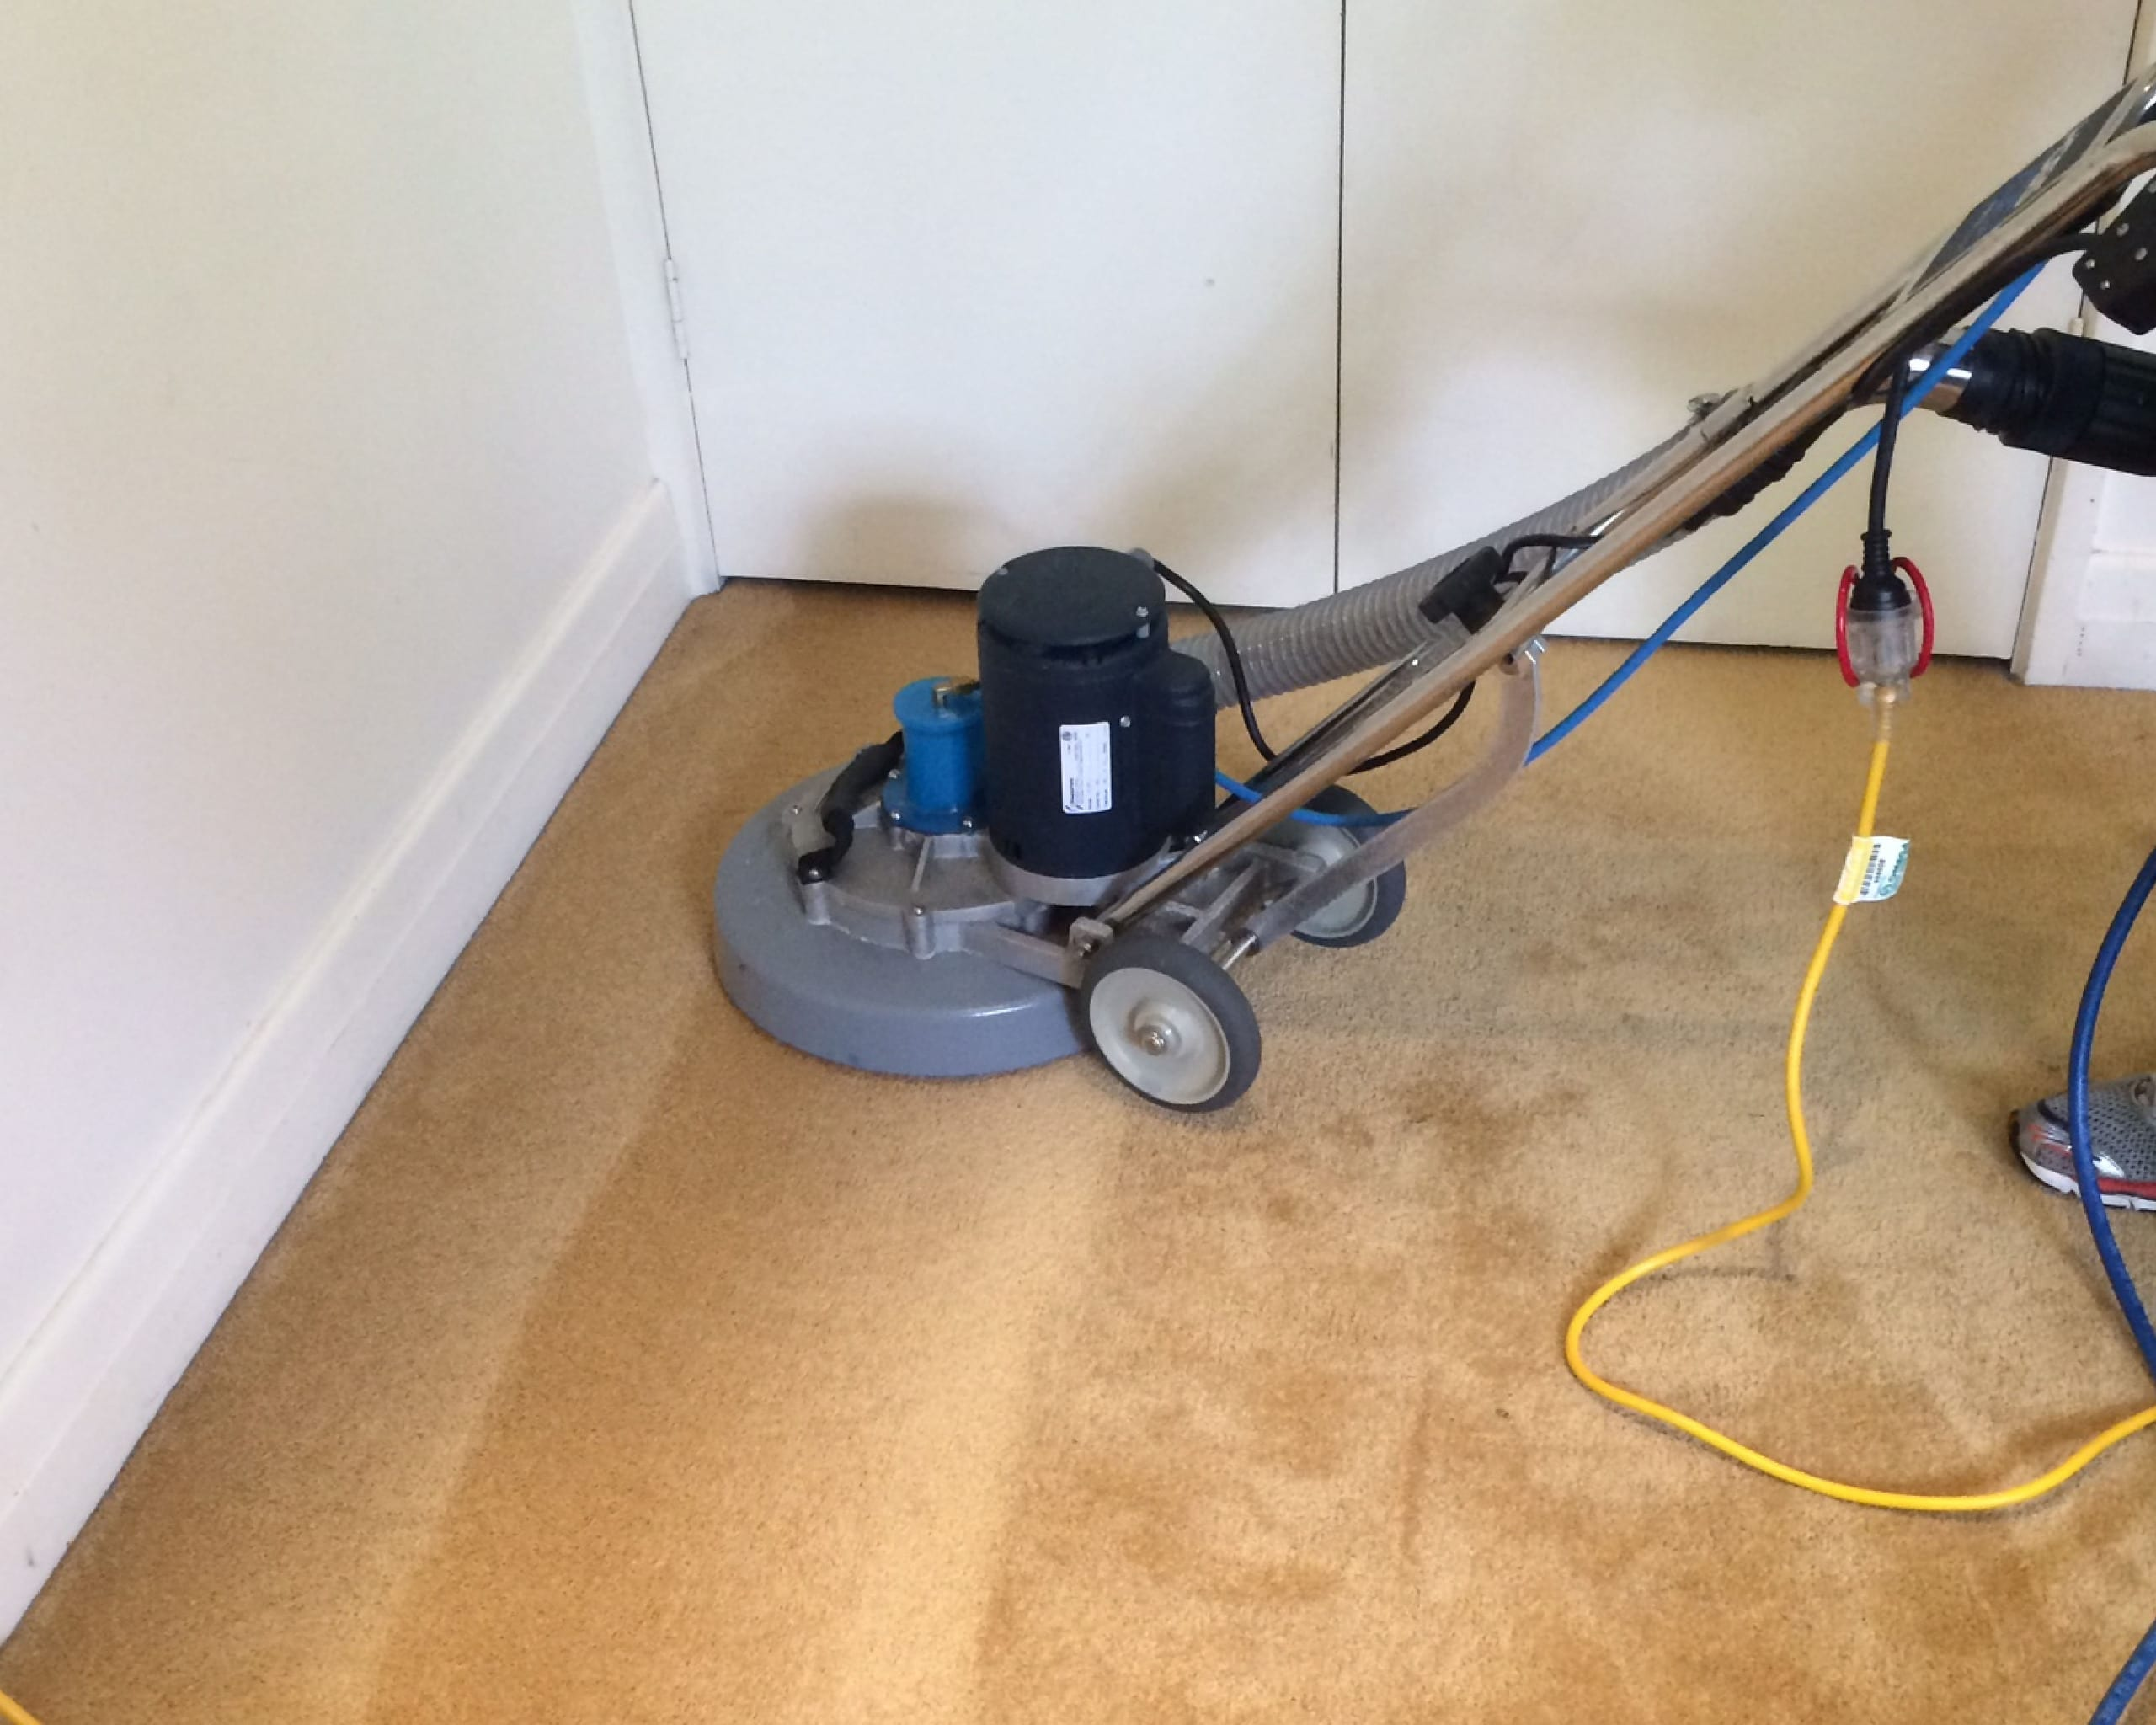 Carpet Cleaning Melbourne with a rotary steam cleaning wand